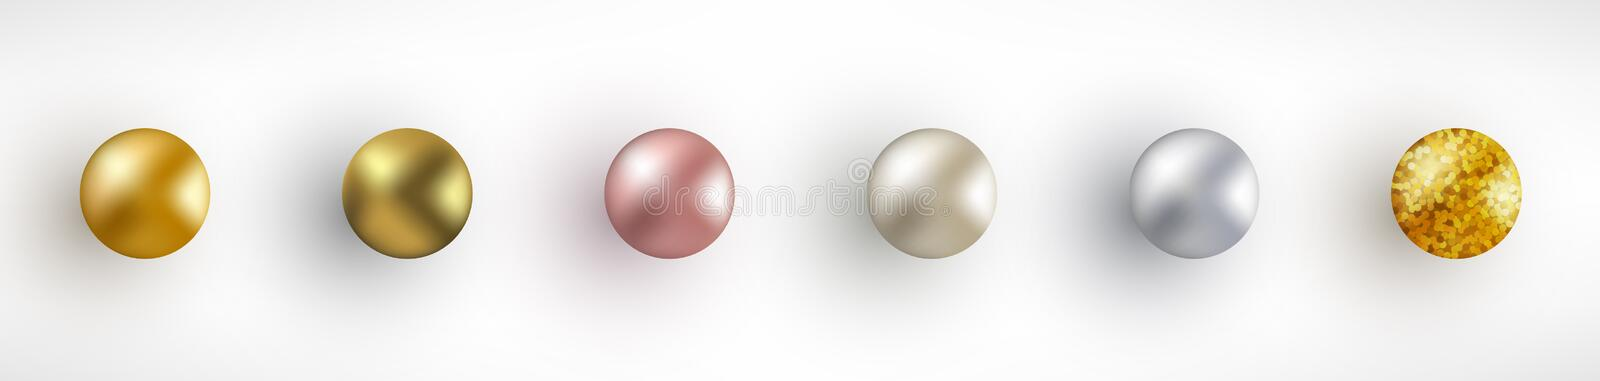 Set of Golden Realistic Balls royalty free illustration